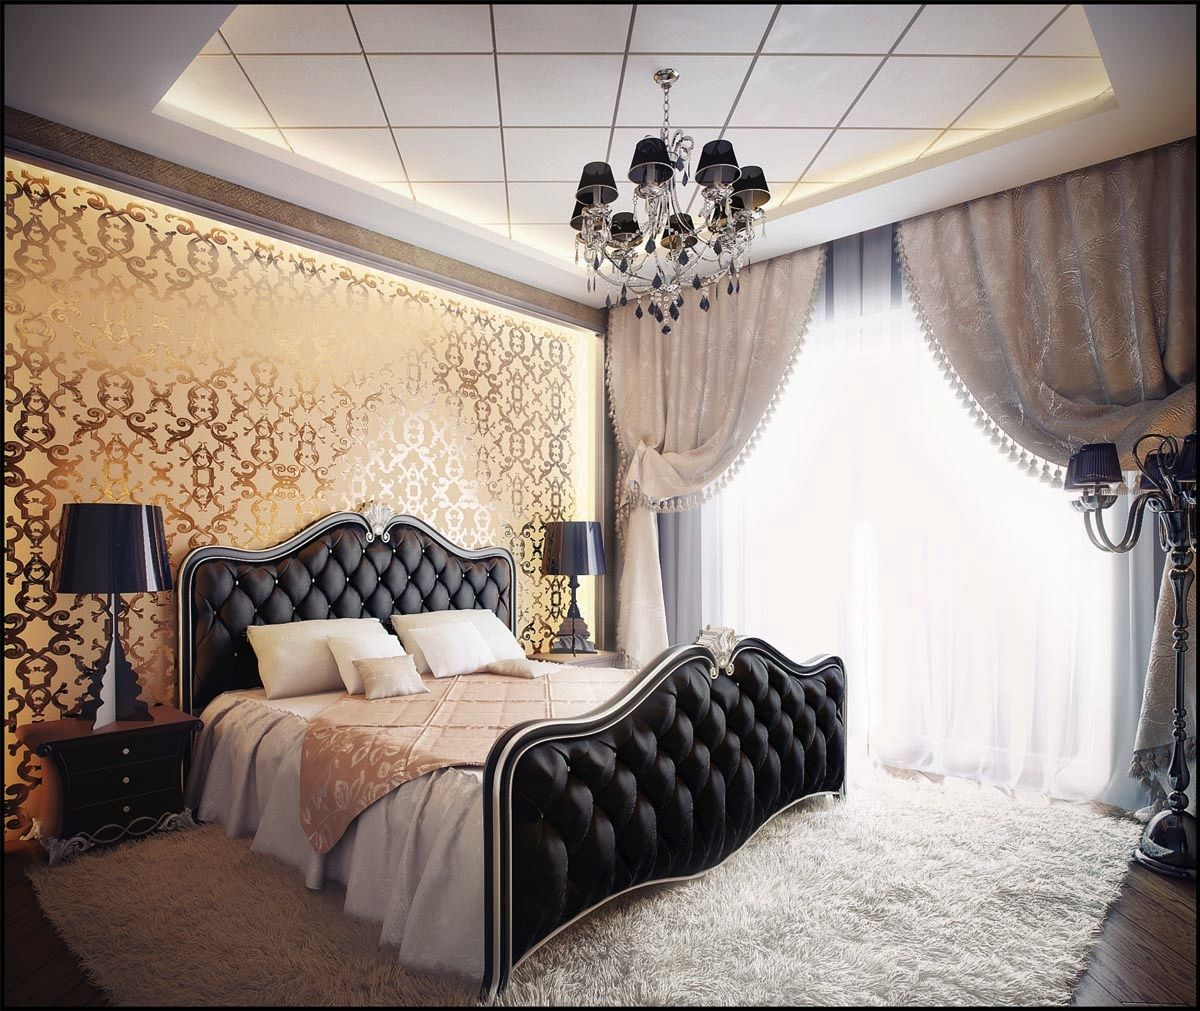 Bedrooms With Traditional Elegance Luxurious Bedrooms Romantic Bedroom Design Master Bedroom Design